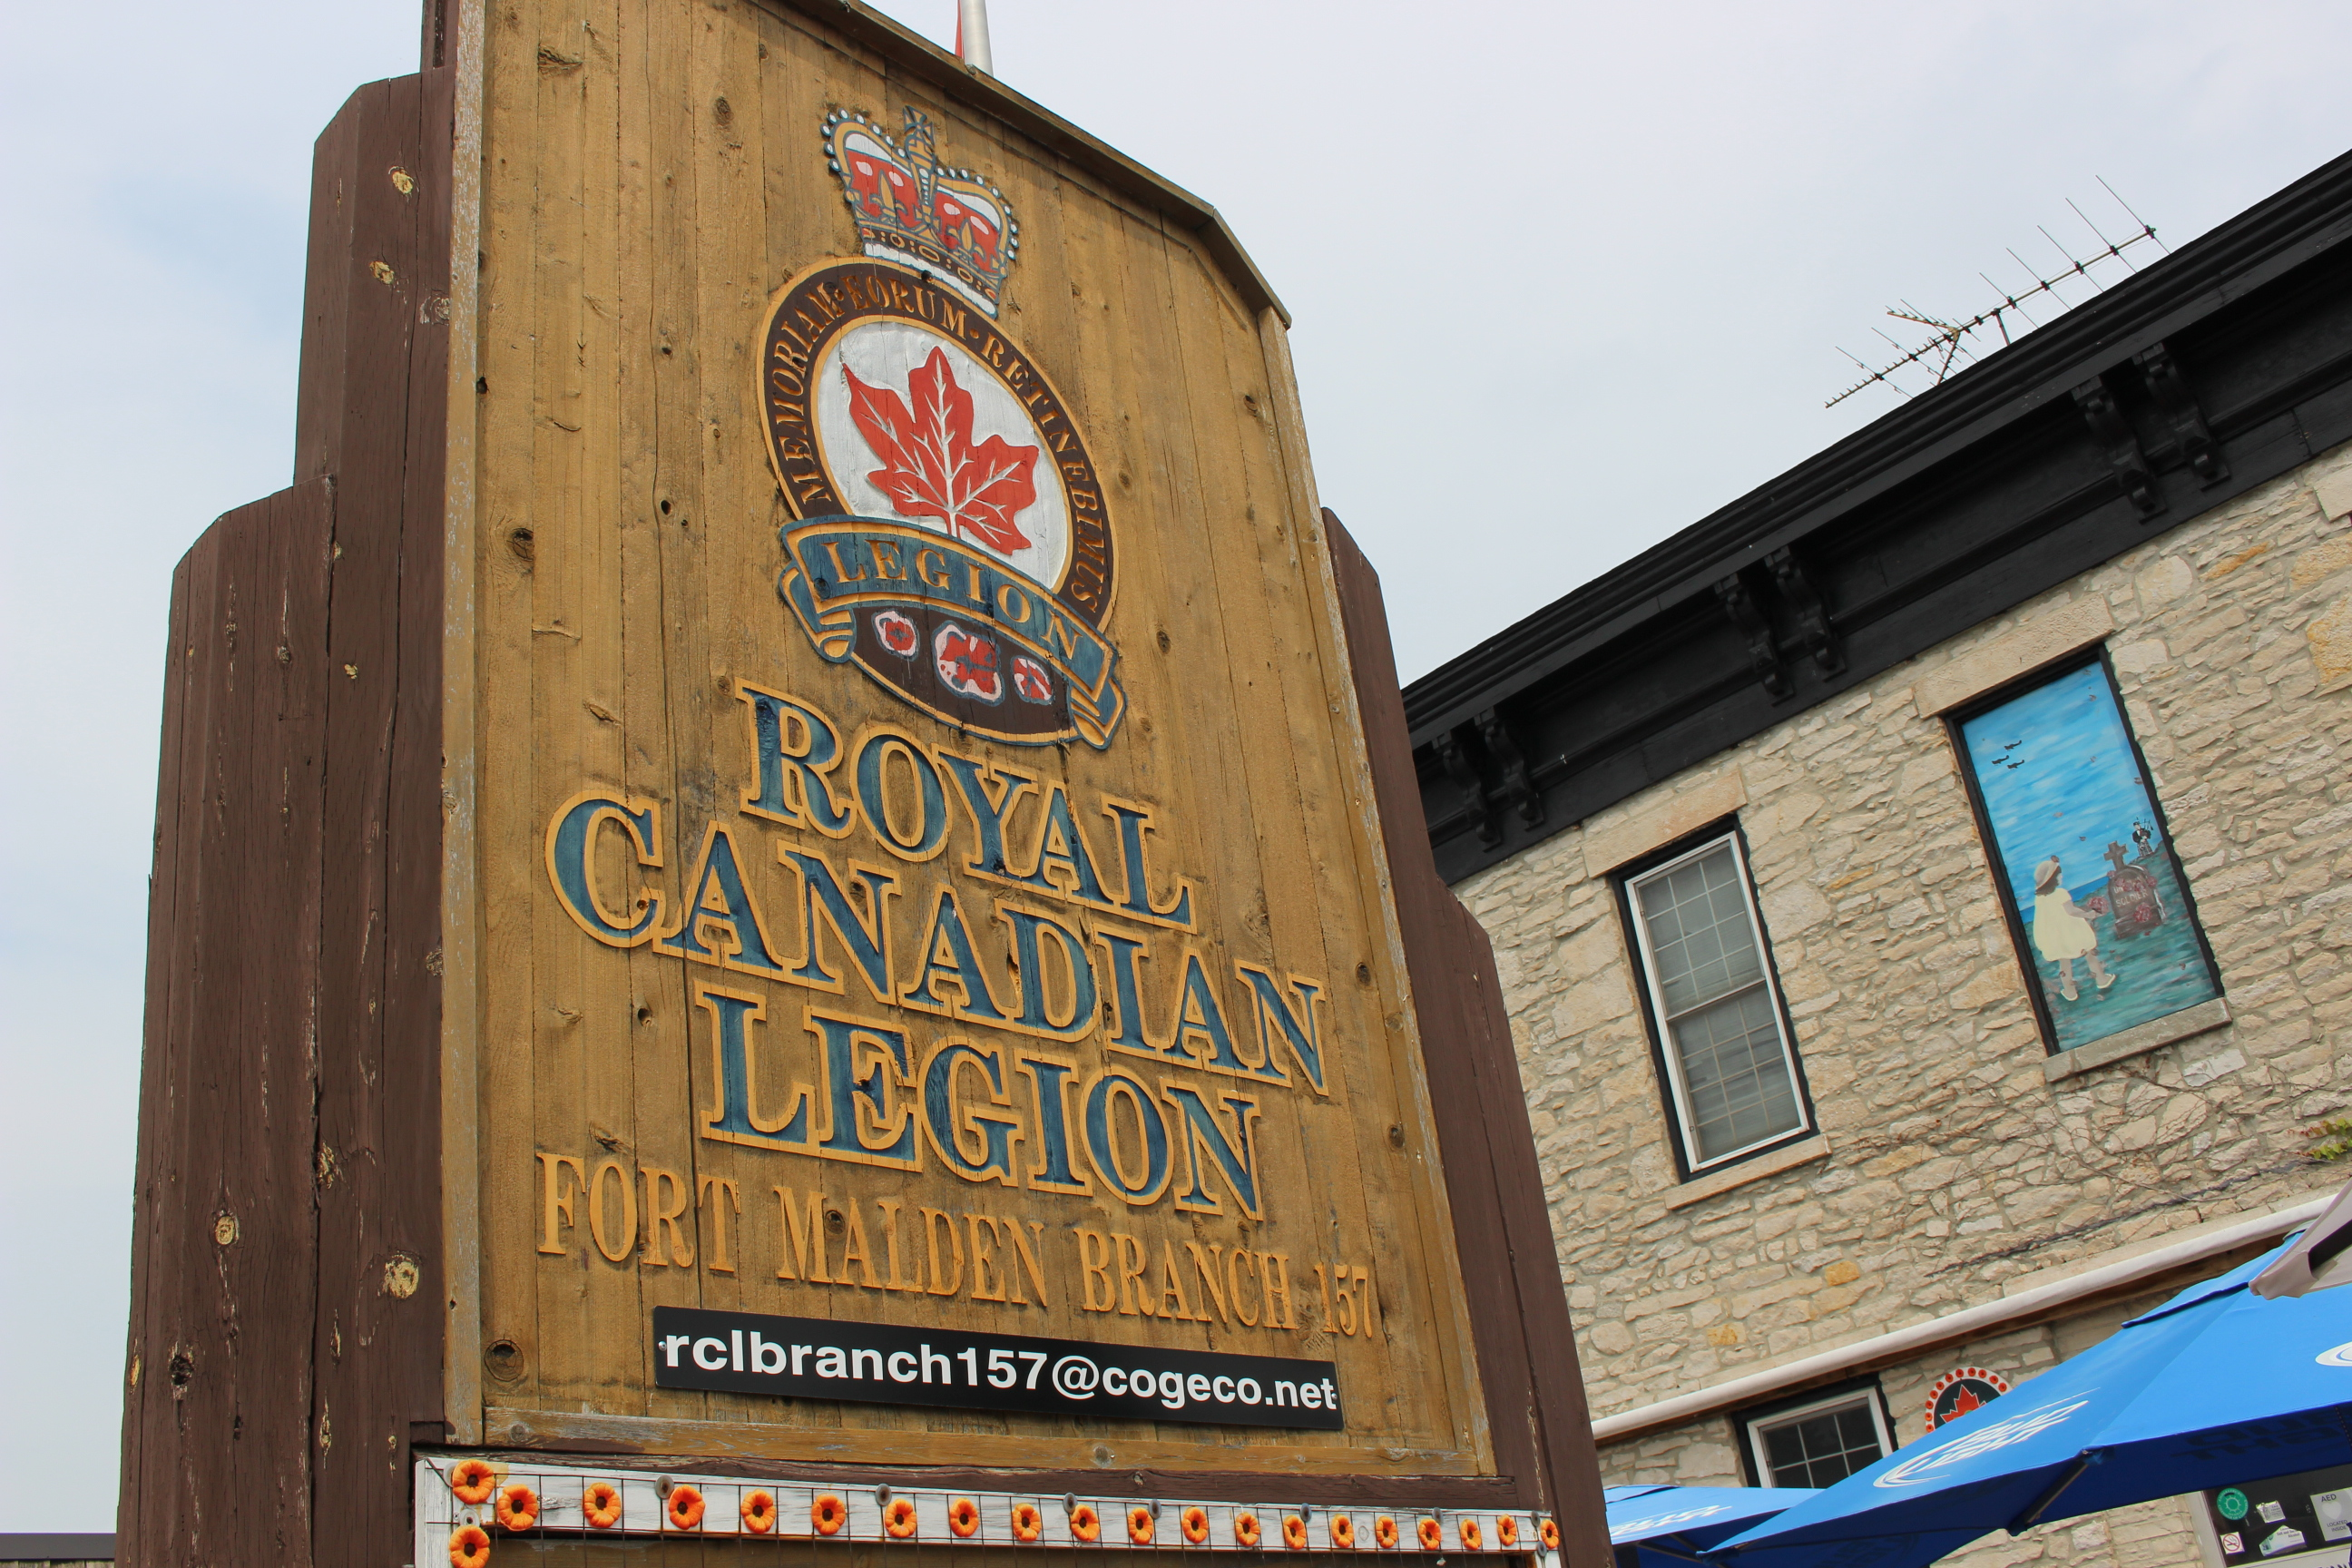 The Royal Canadian Legion Branch 157 in Amherstburg. (Photo by Adelle Loiselle.)